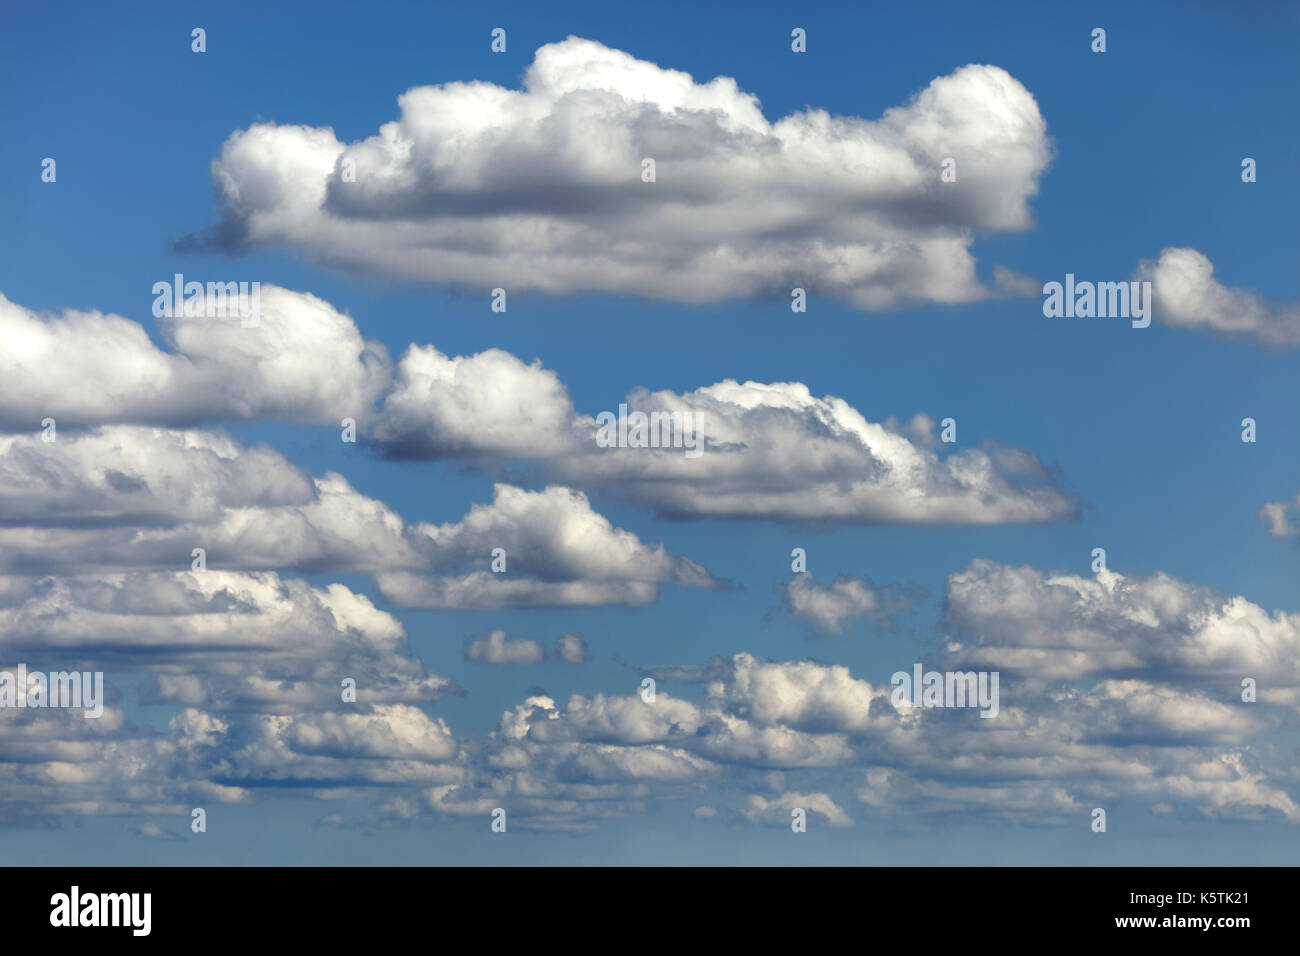 Fair weather clouds, cloud clusters, Cumulus humilis, Germany - Stock Image